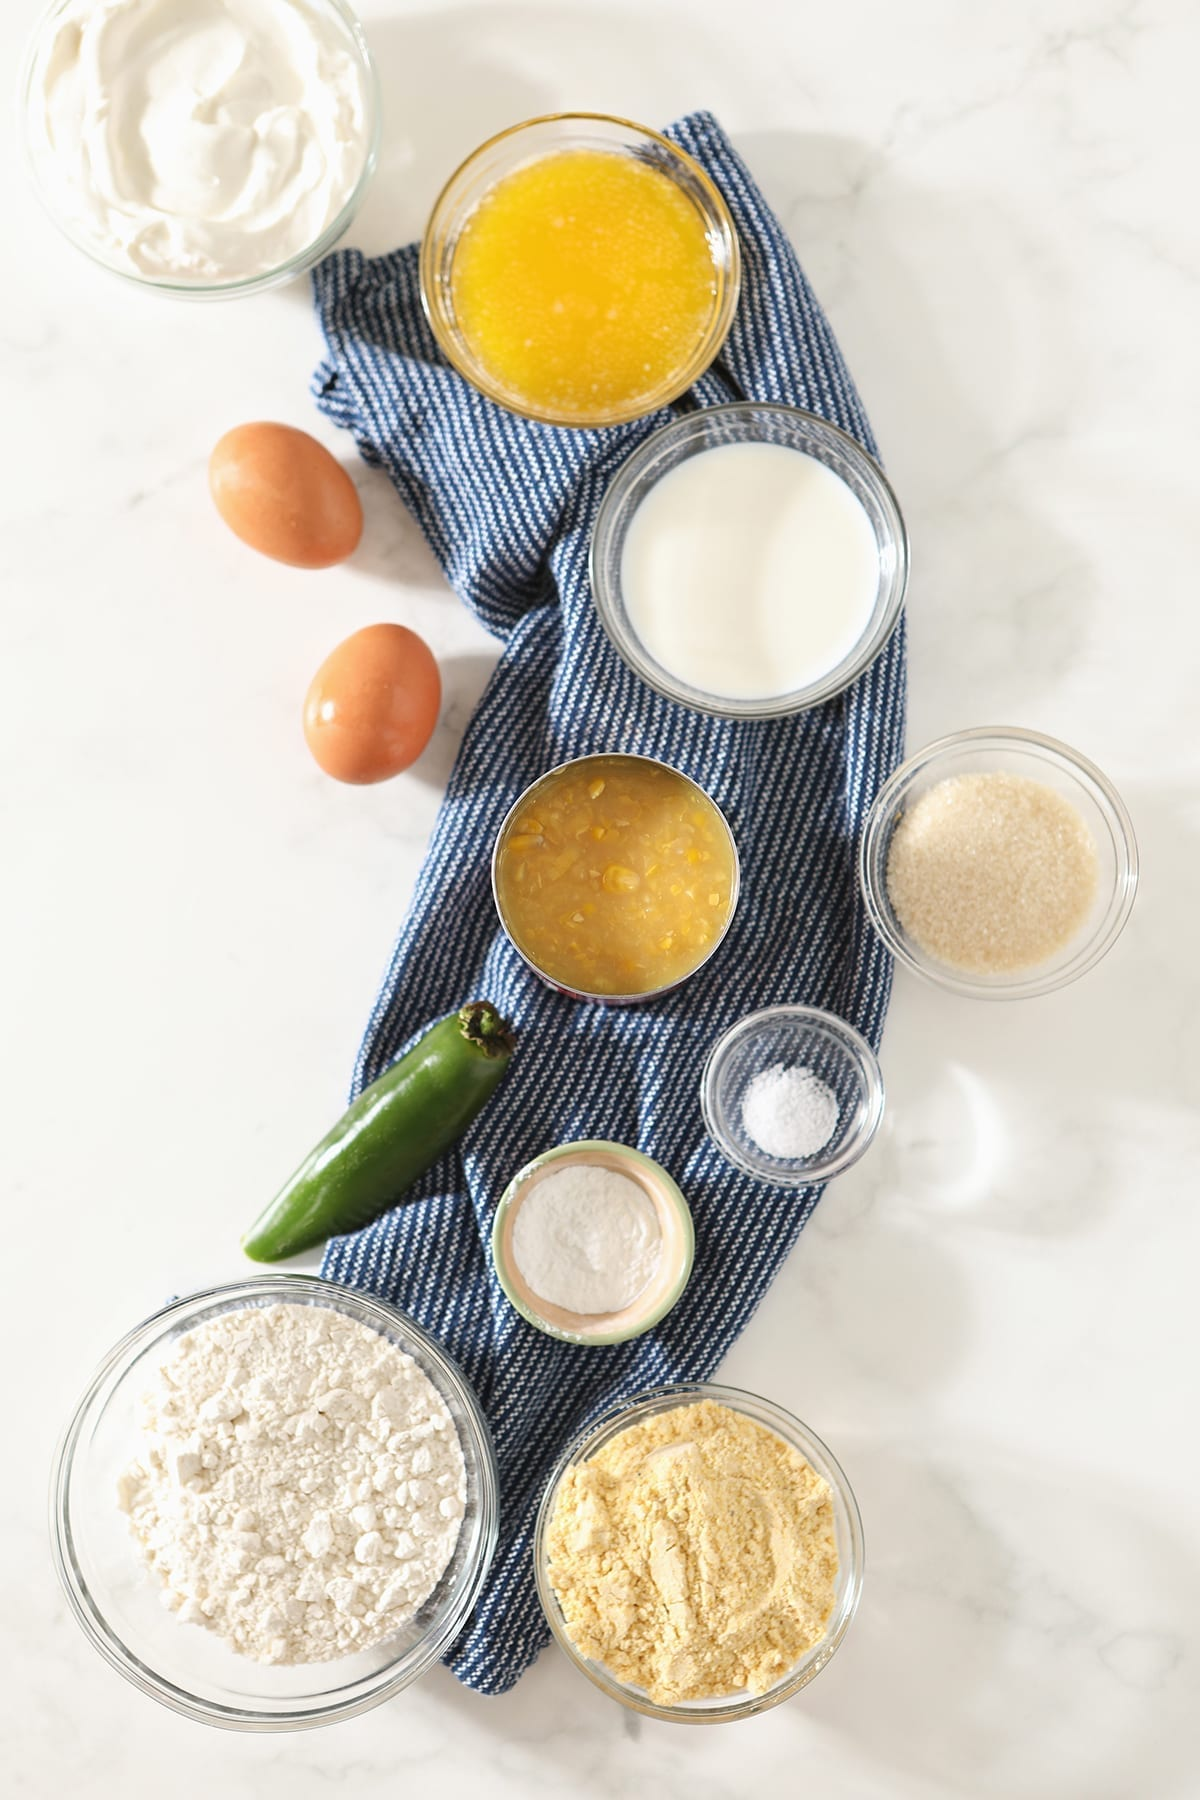 Cornmeal, flour, sour cream, butter, eggs, jalapeno and more in bowls on top of marble before the casserole is mixed